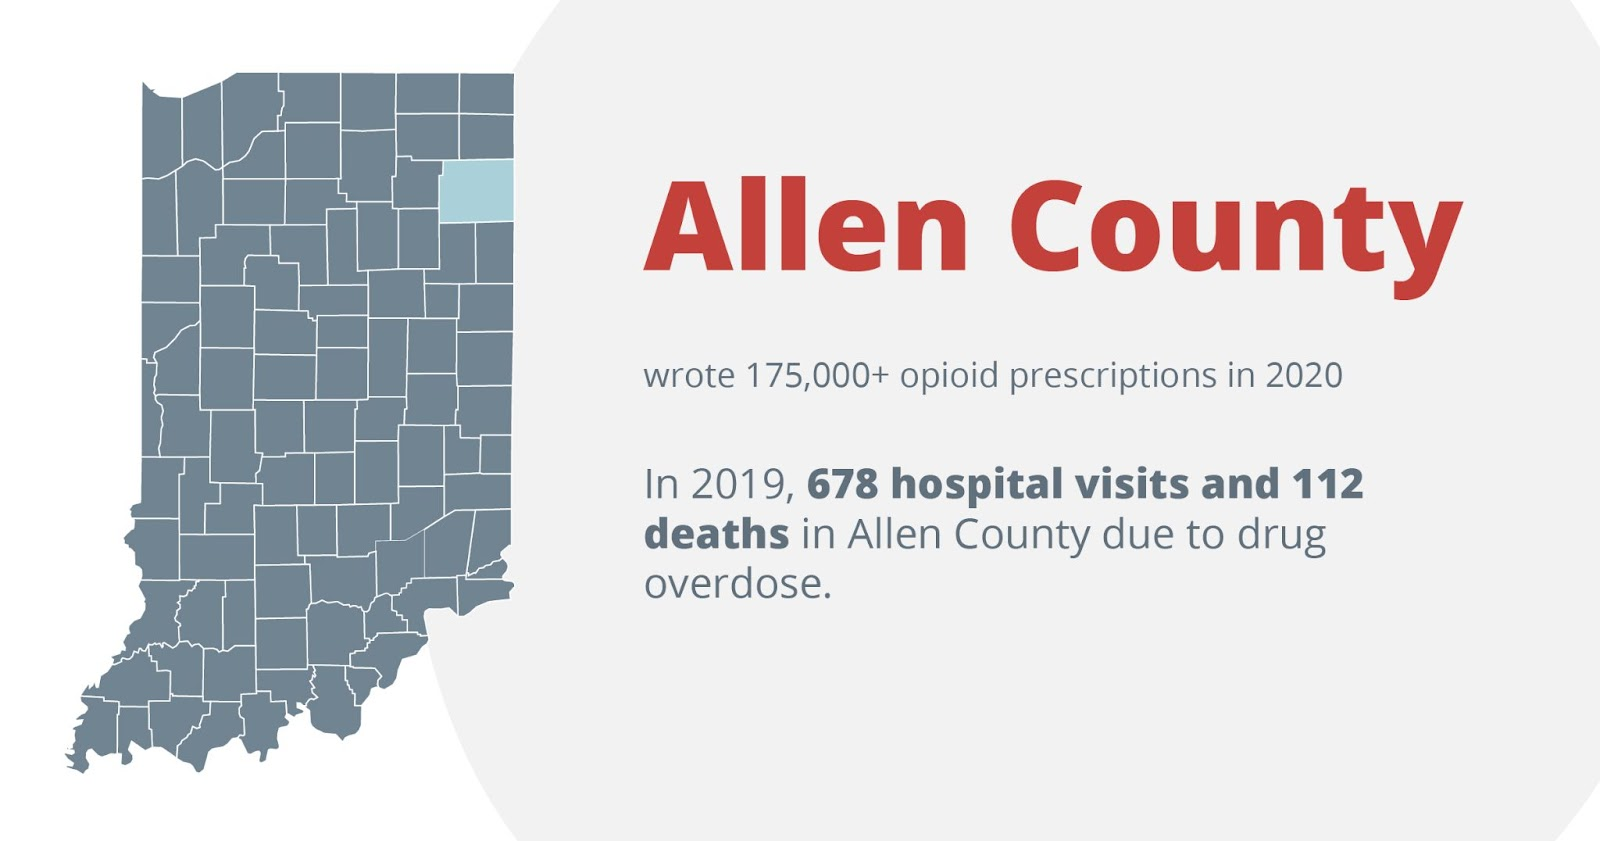 Allen county wrote 175,000+ opioid prescriptions in 2020. In 2019, 678 hospital visits and 112 deaths in allen county due to drug overdose.